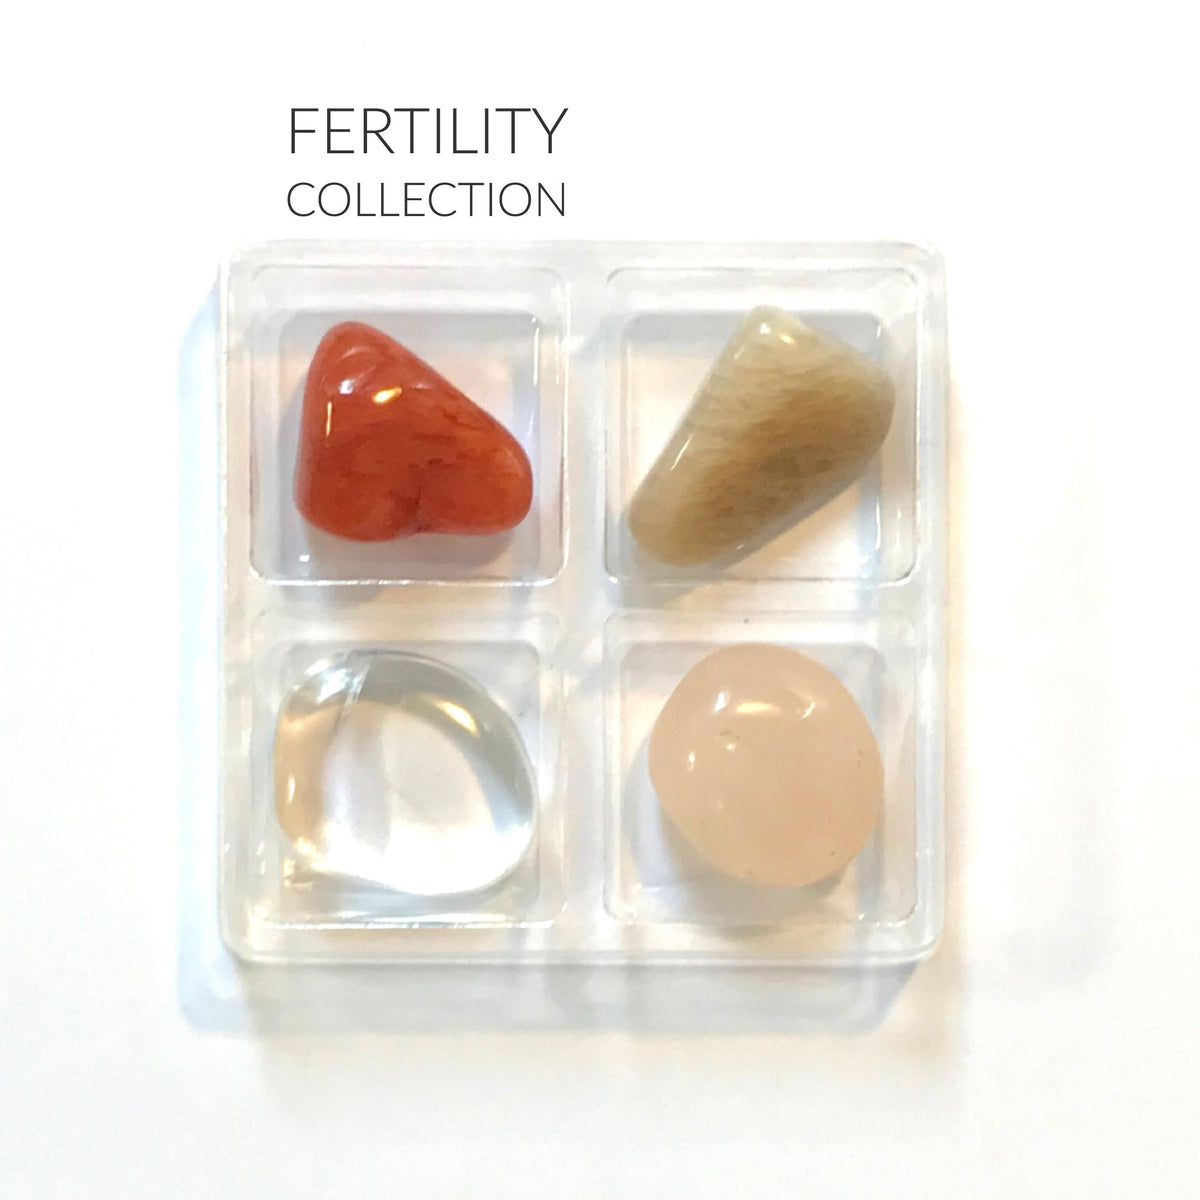 FERTILITY | NEW BABY